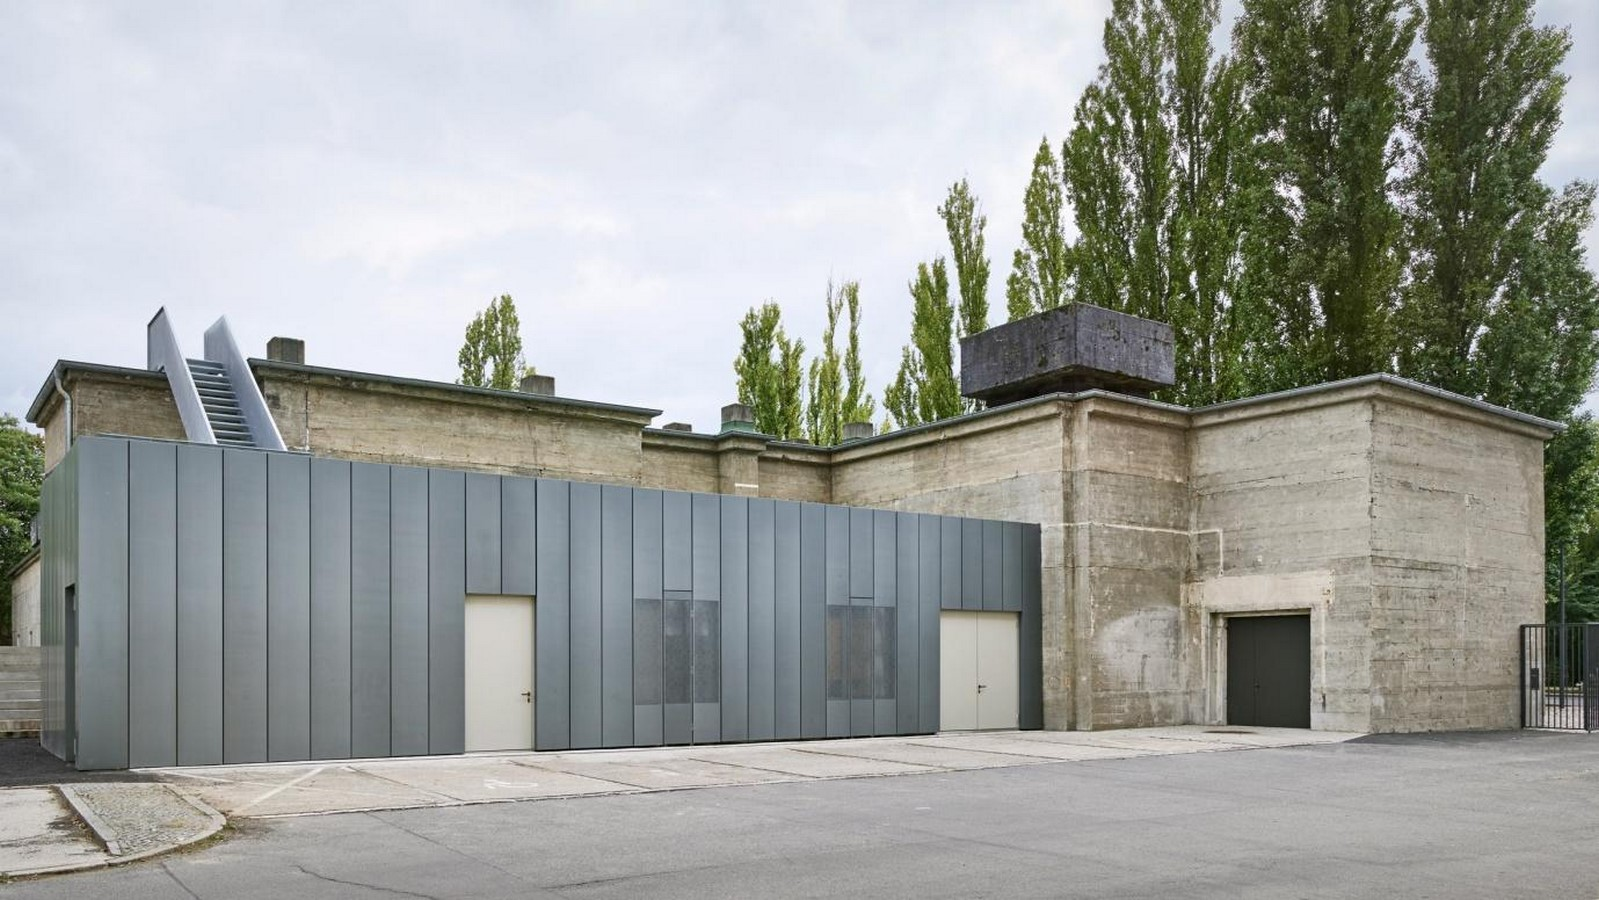 The Feuerle Collection, Berlin byJohn Pawson - Sheet3